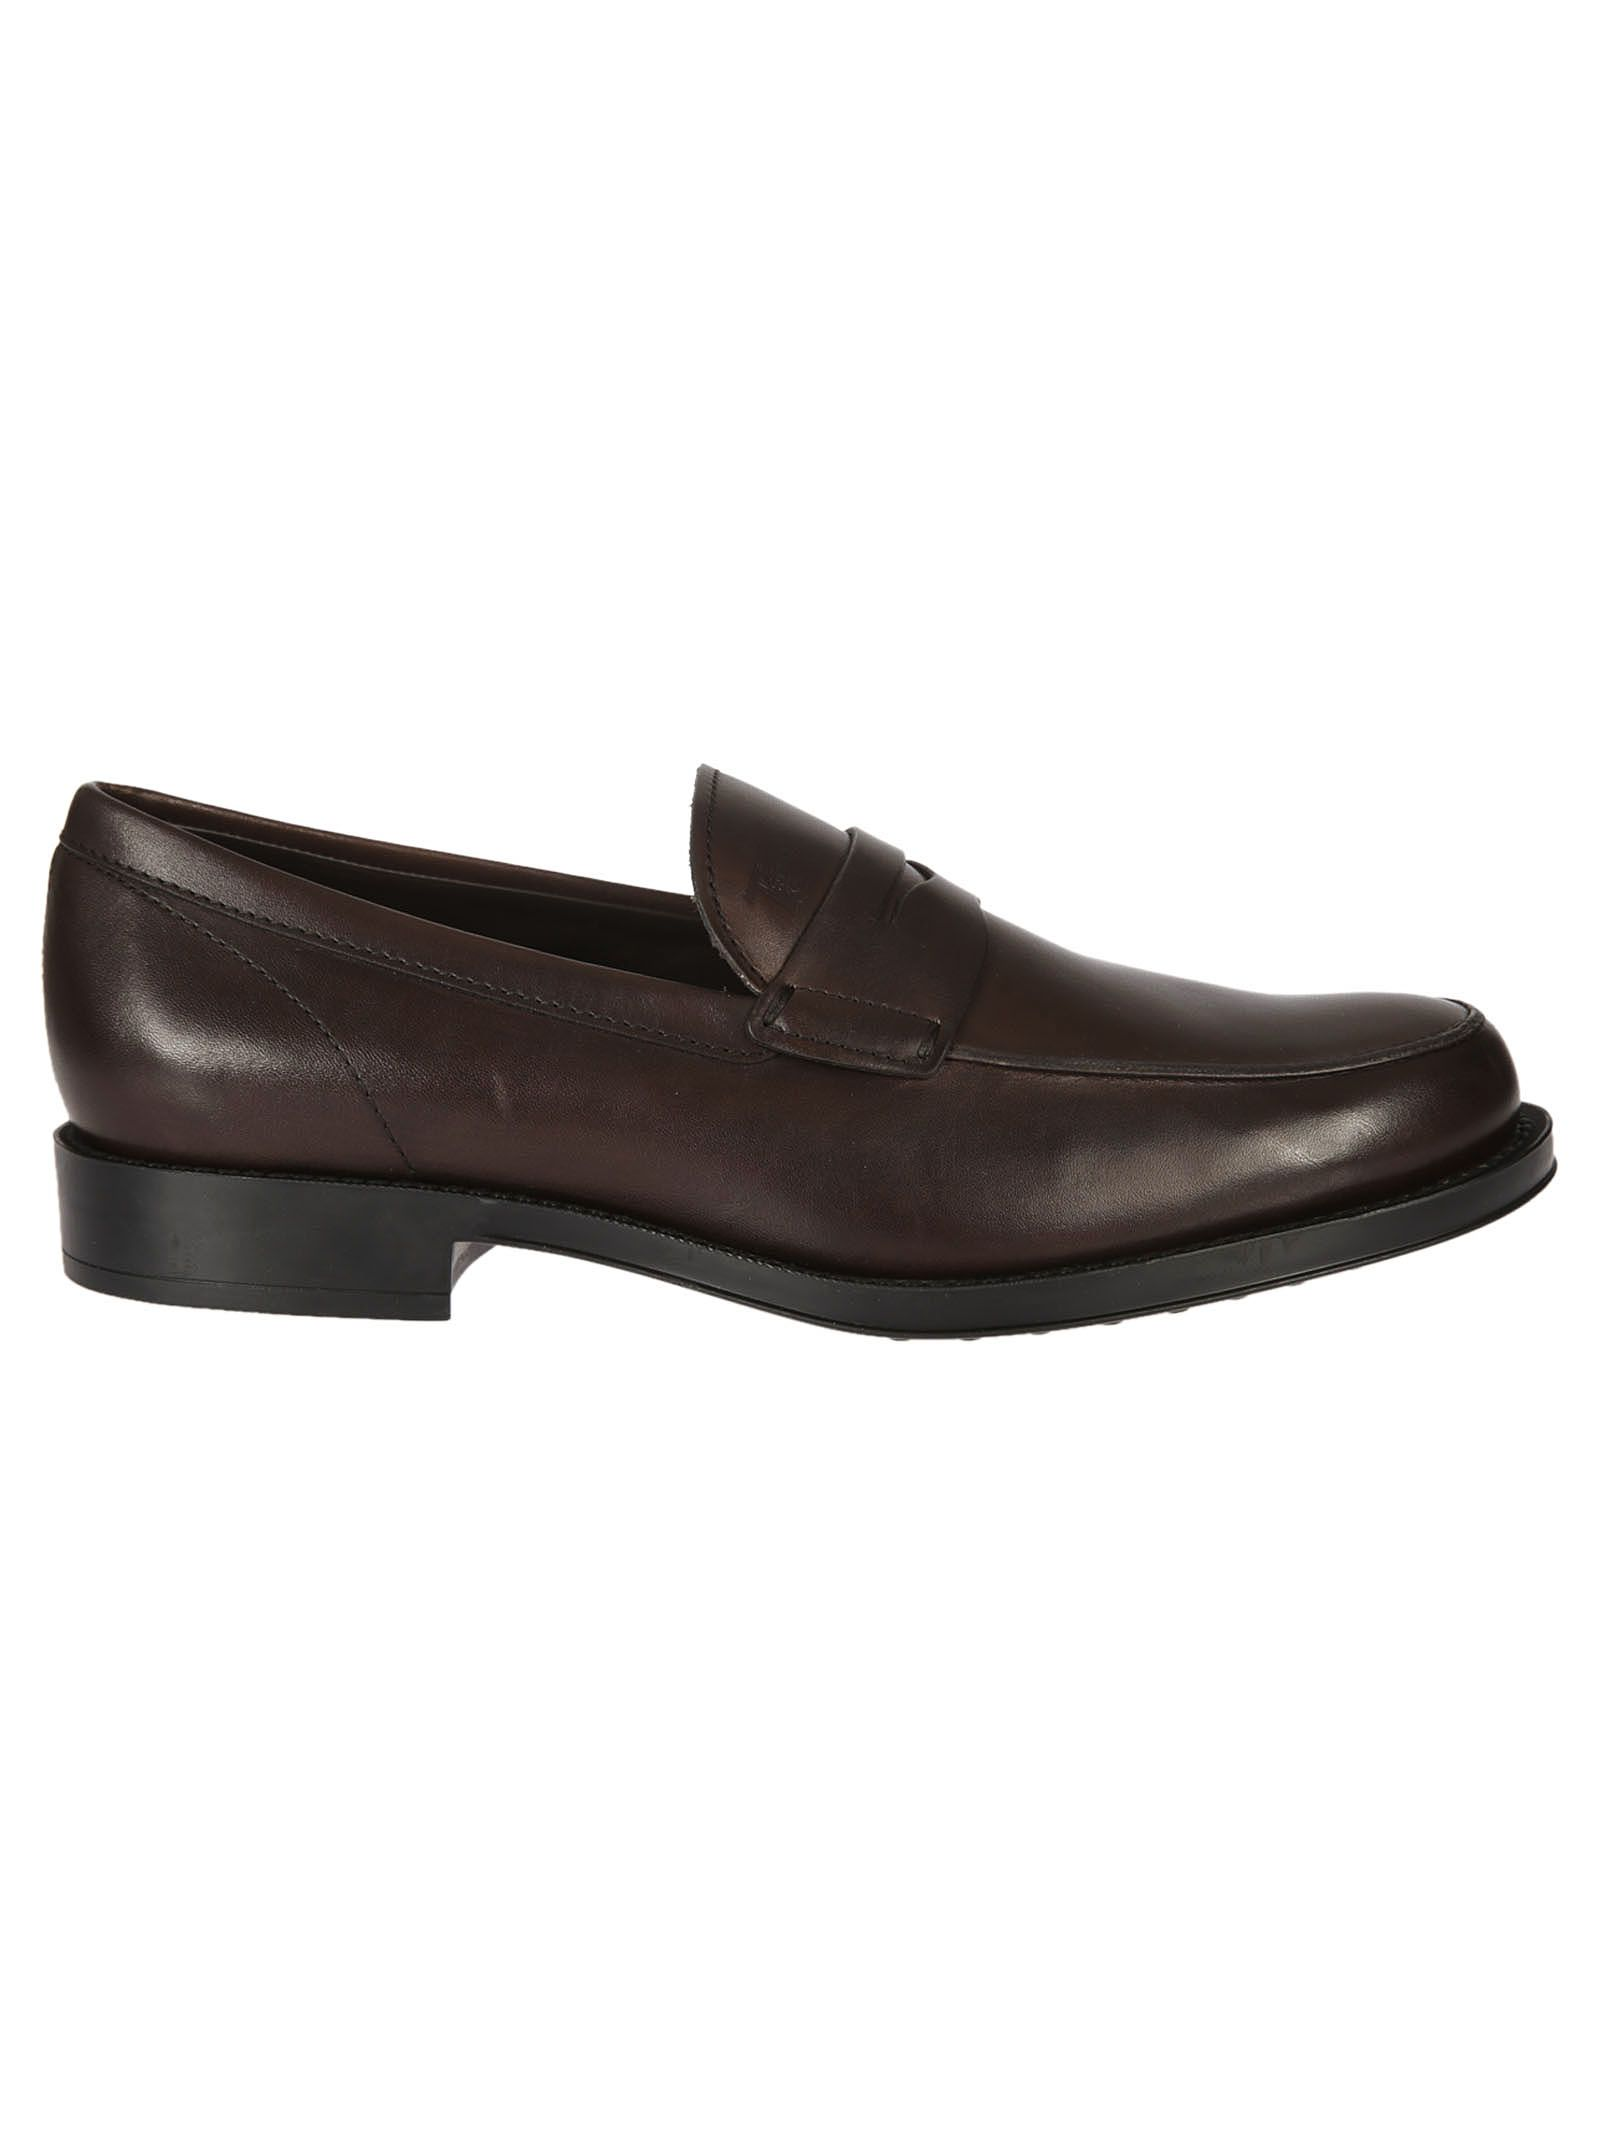 Tods Tods Leather Loafers